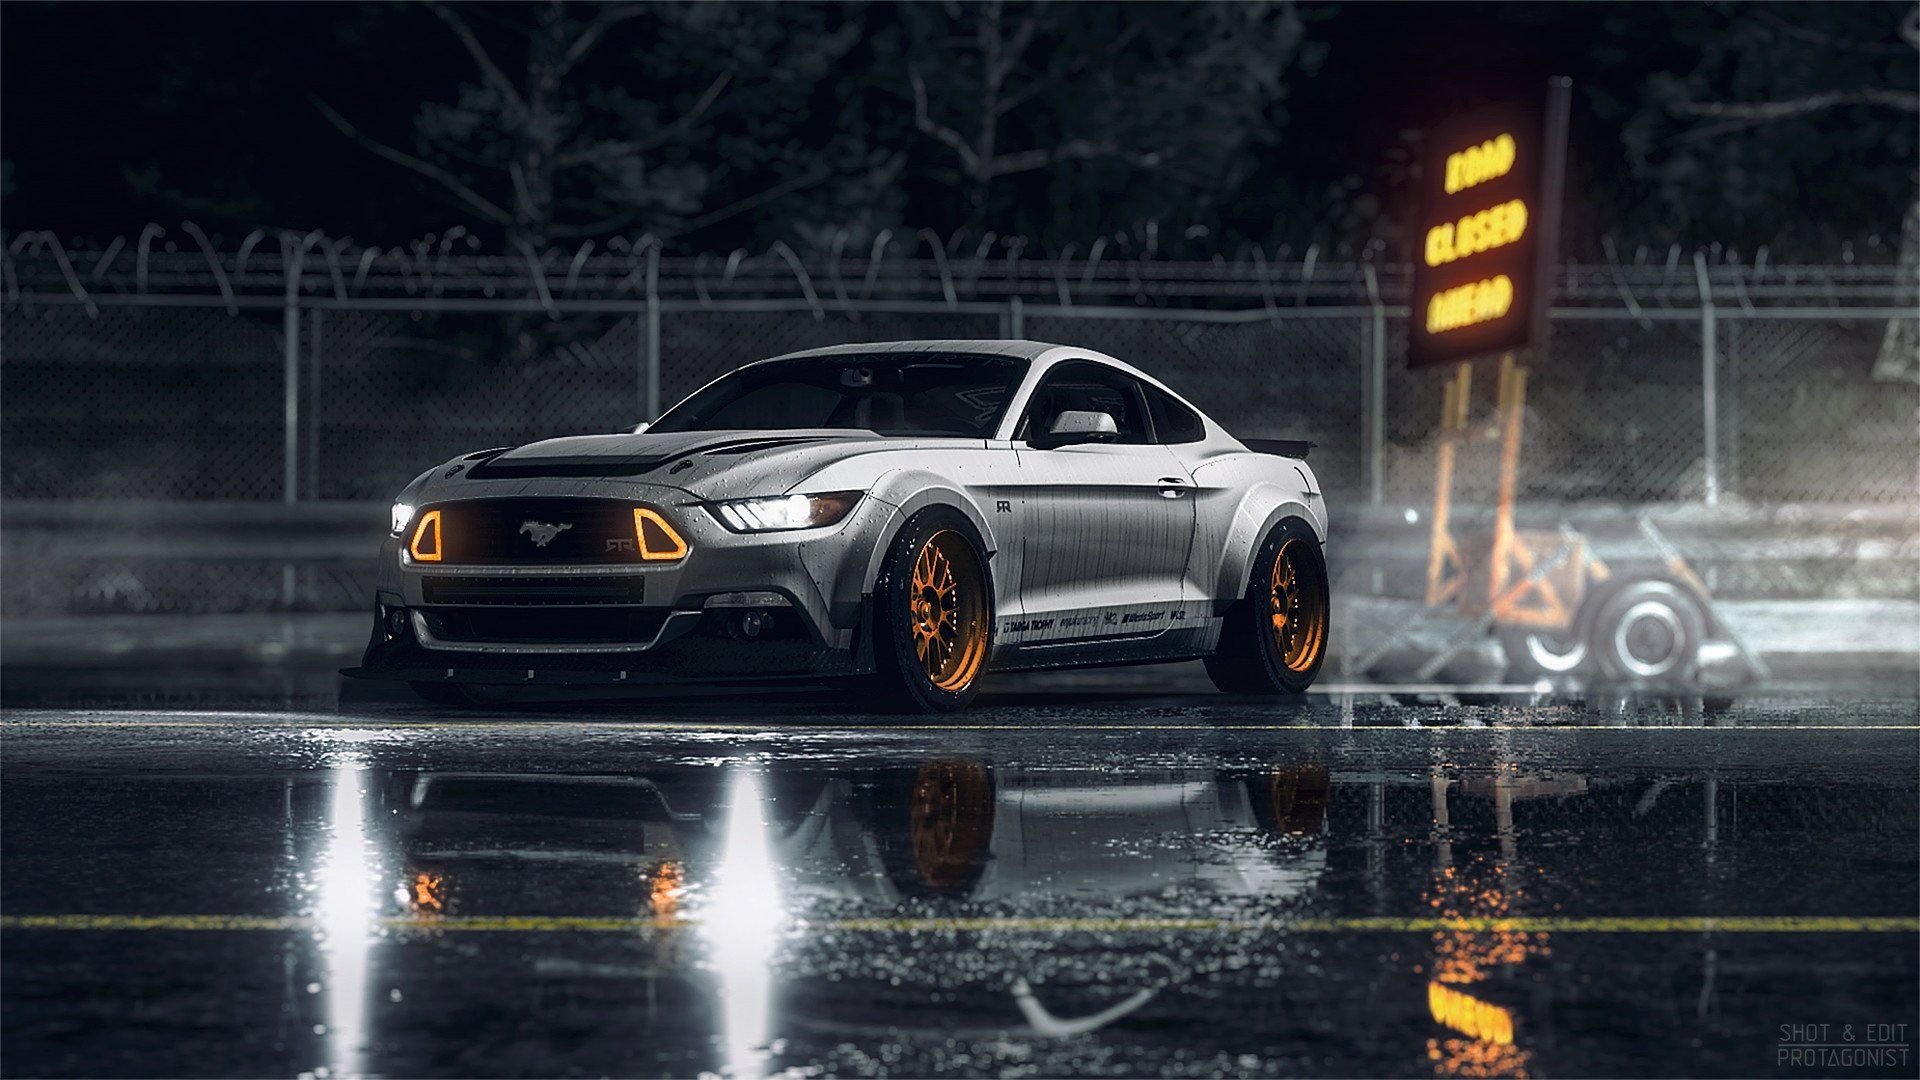 Ford Mustang Rtr Wallpapers Top Free Ford Mustang Rtr Backgrounds Wallpaperaccess